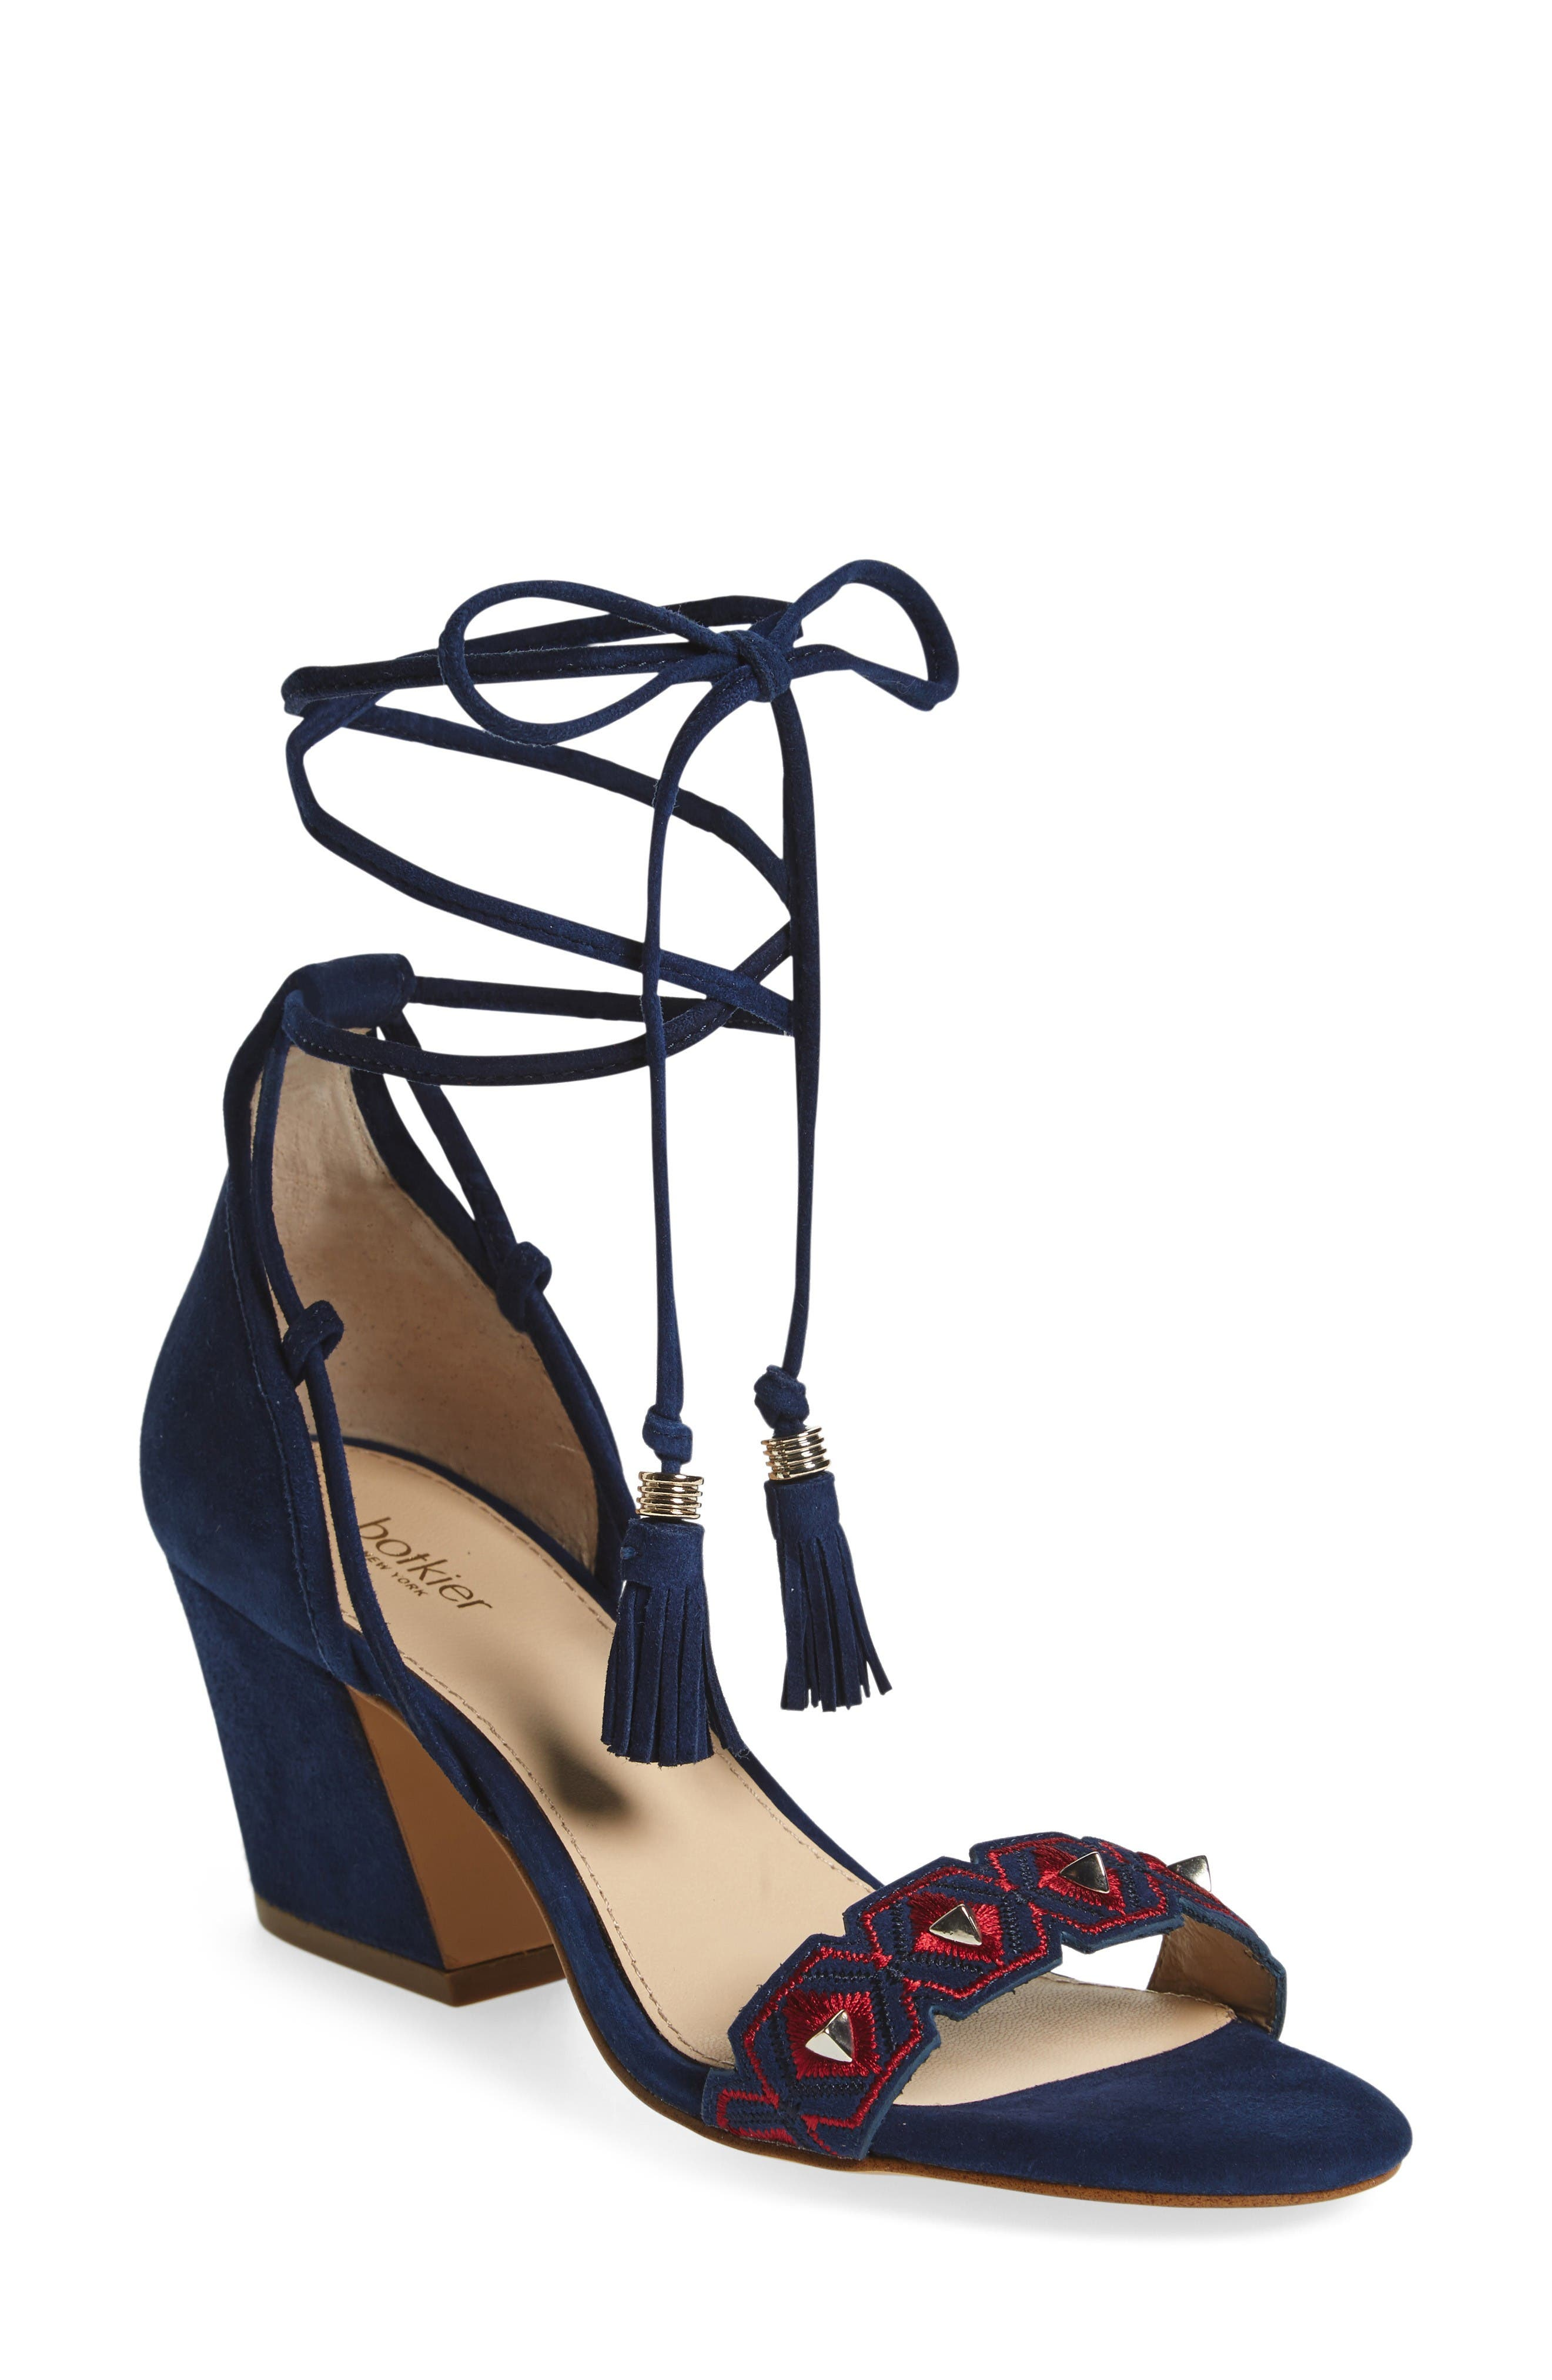 BOTKIER Penelope Embroidered Ankle Wrap Sandal